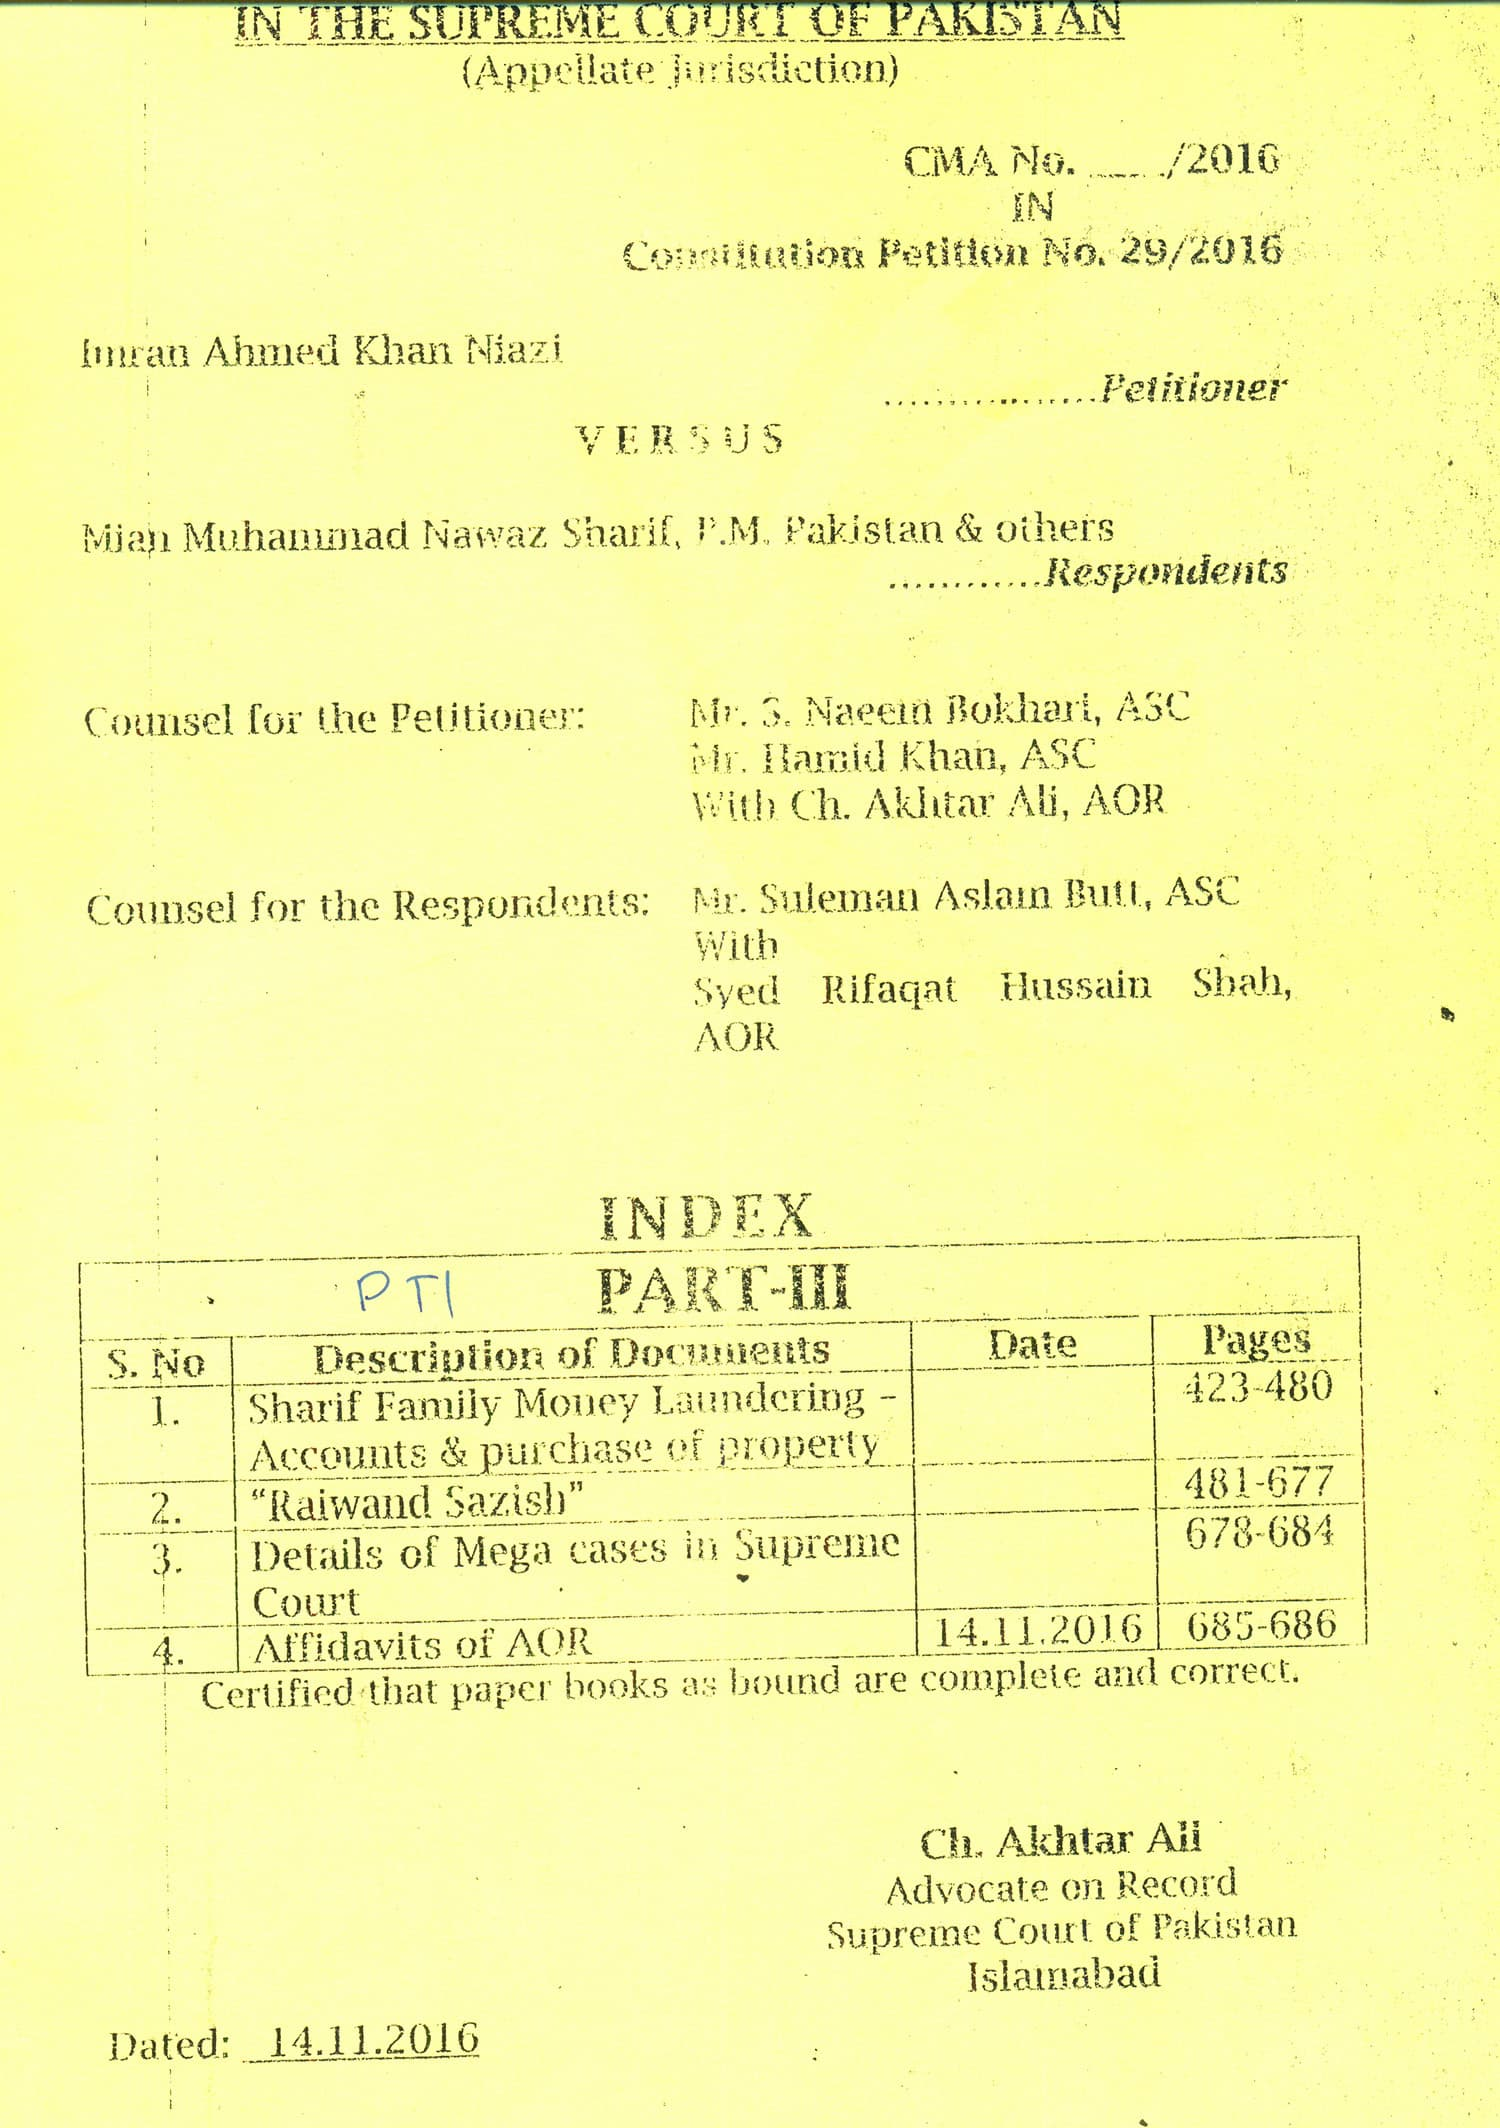 Table of contents shows that 'Raiwind Sazish' stretches from pages 481-677.